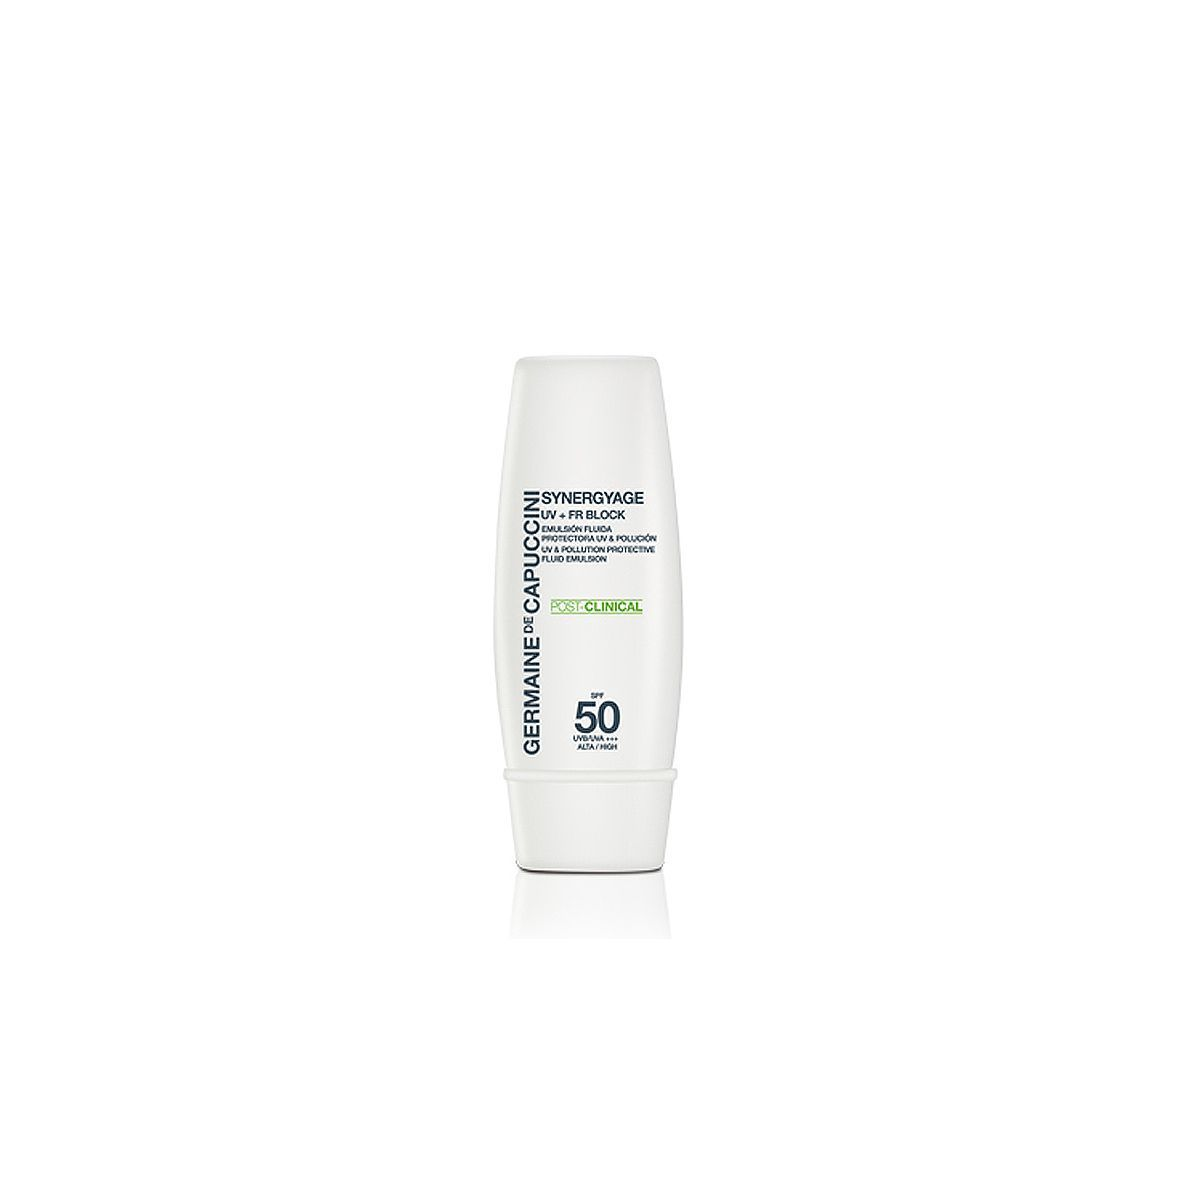 SYNERGYAGE UV + FR BLOCK 30ml Germaine de Capuccini